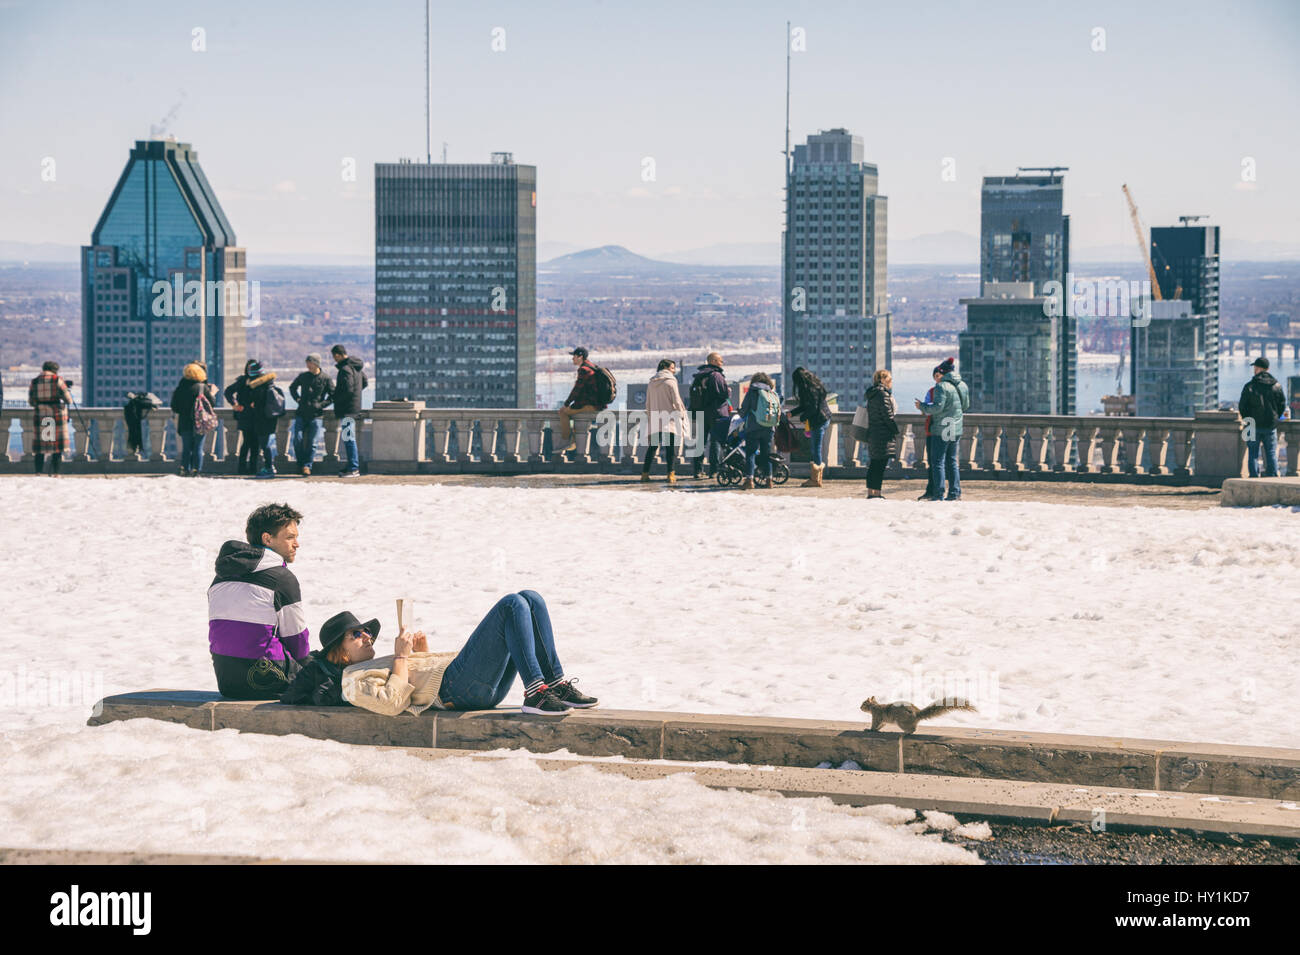 Montreal, CA - 30 March 2017: People enjoying a sunny spring day on Kondiaronk Belvedere Stock Photo